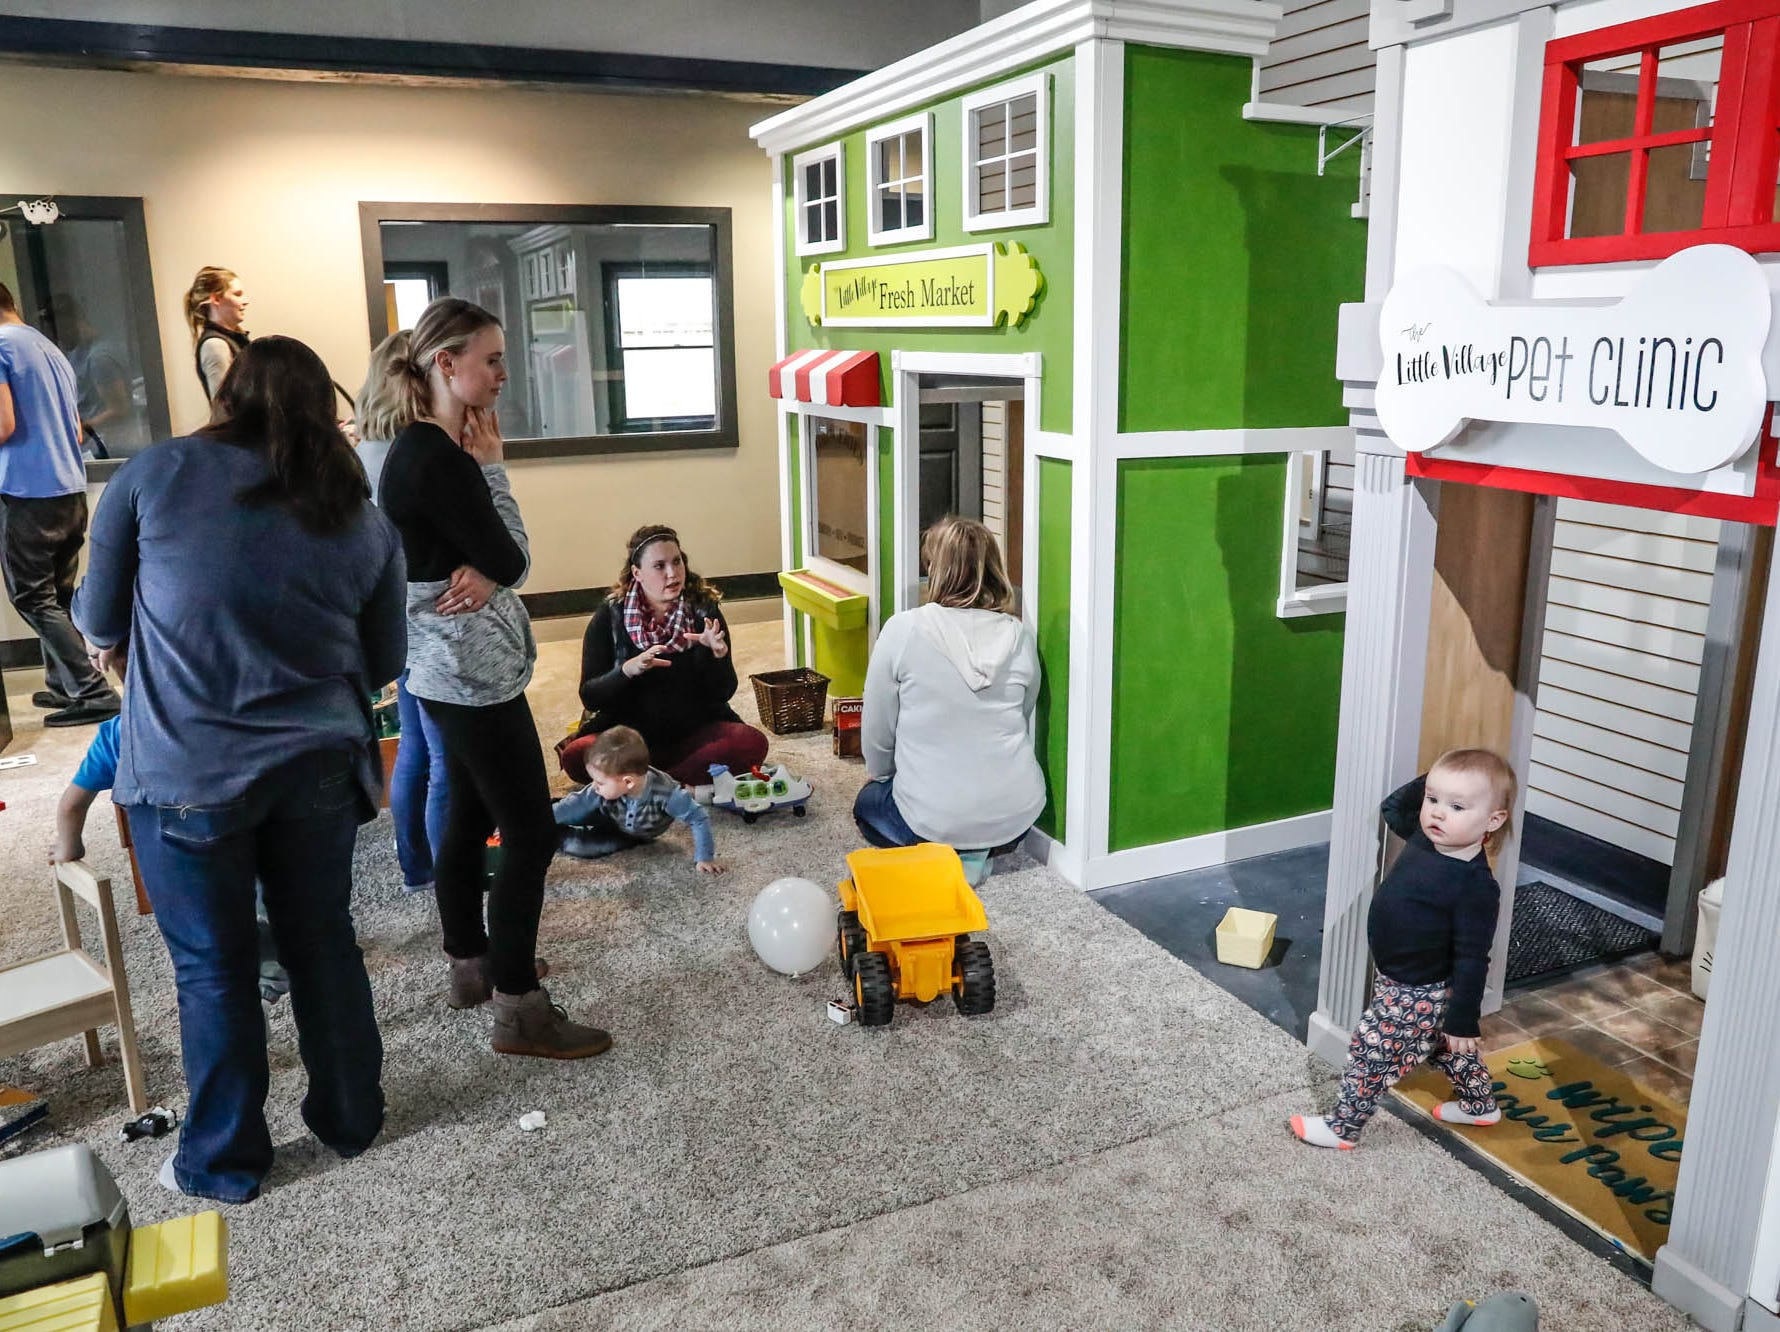 Caregivers and children play in The Little Fresh Market and the Little Village Pet Clinic play houses at The Little Village Playroom, 9850 N. Michigan Rd, Carmel, Ind., on Tuesday, Feb. 5, 2019. The Play Room offers caregivers offers free coffee and free wifi to work or check emails.